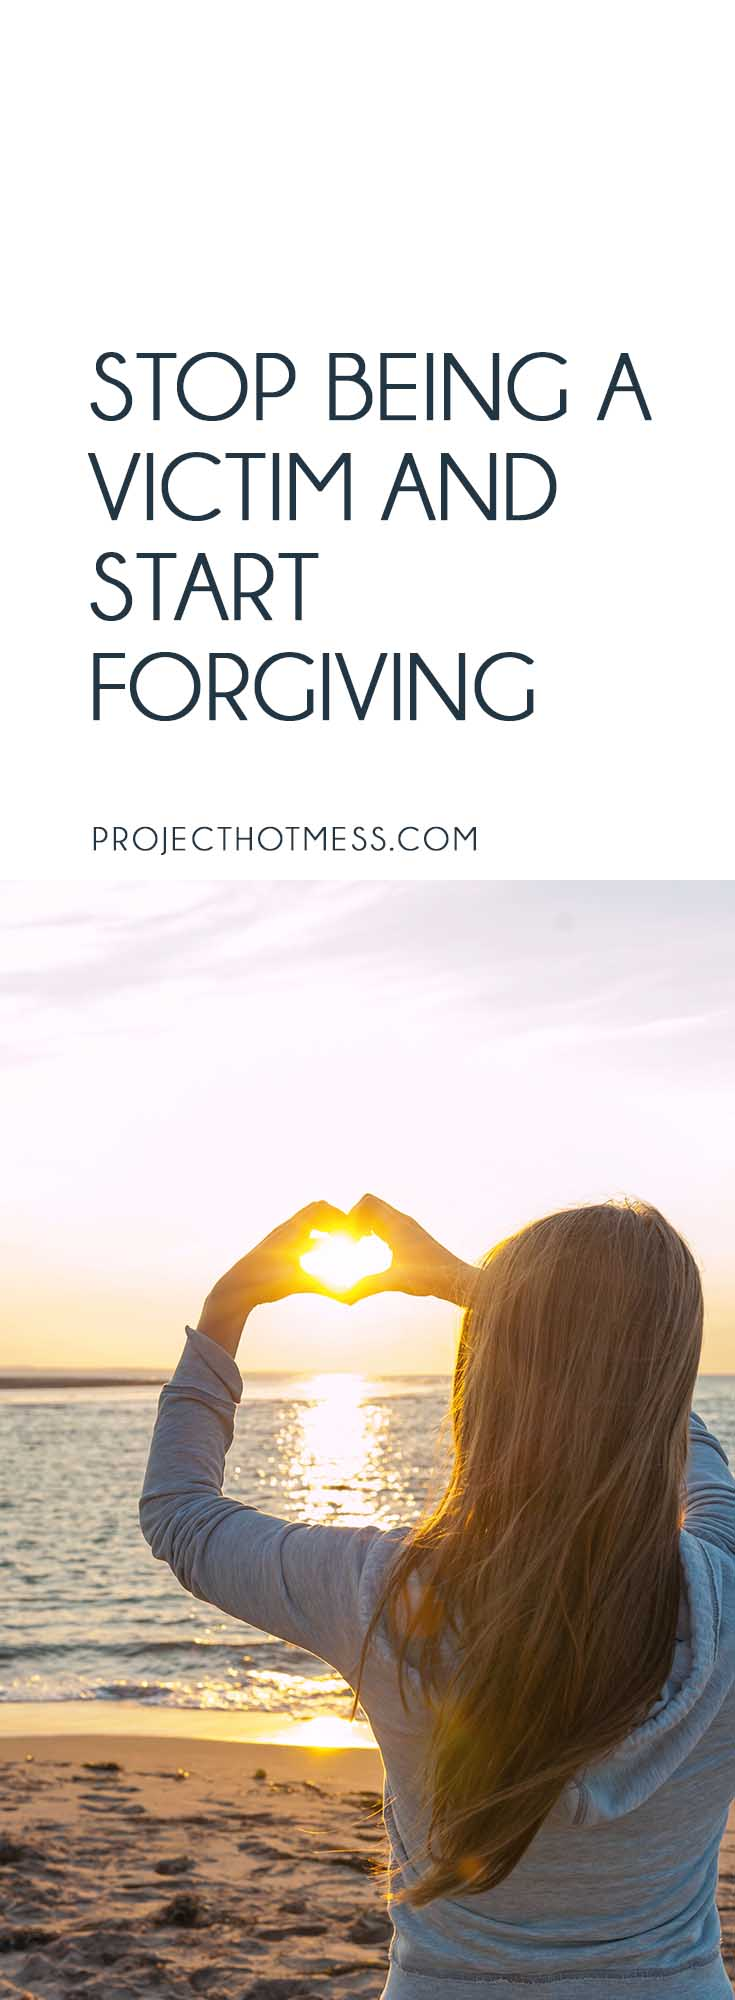 When you're stuck in a negative mindset it's difficult to see how you can stop being a victim, let alone actually start forgiving people, but it's possible.